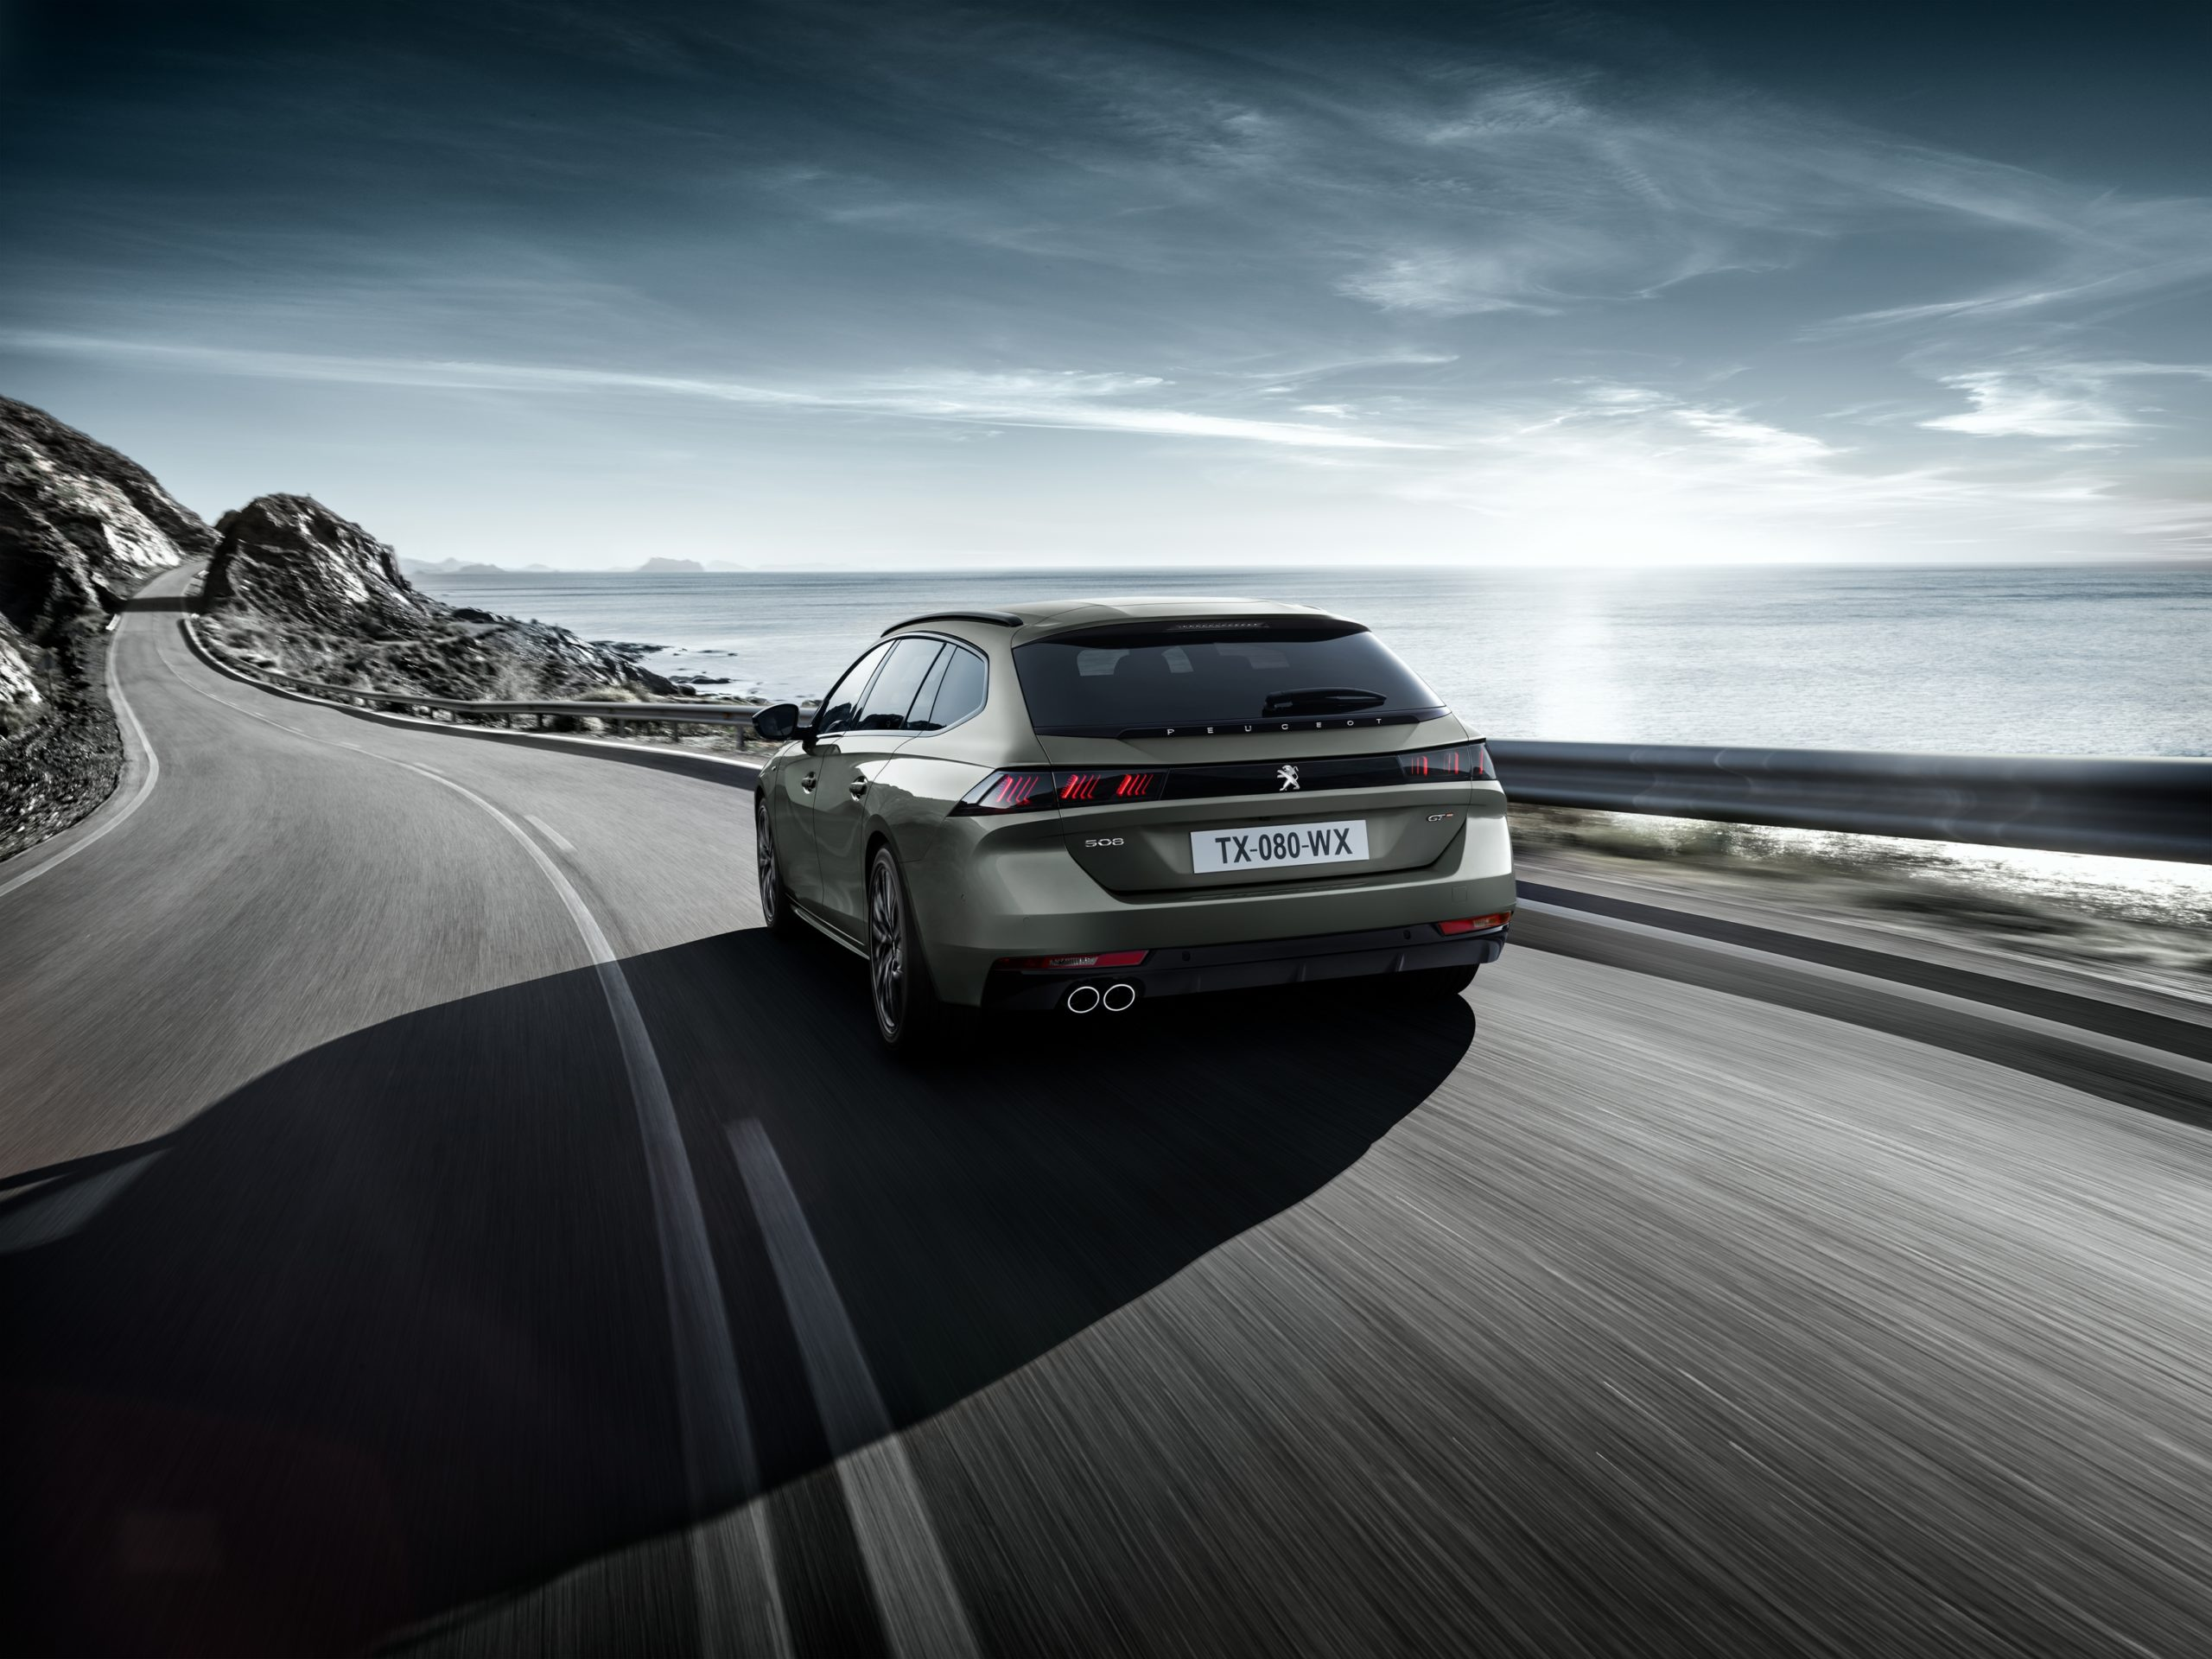 Relax and enjoy the drive with the Peugeot 508 SW